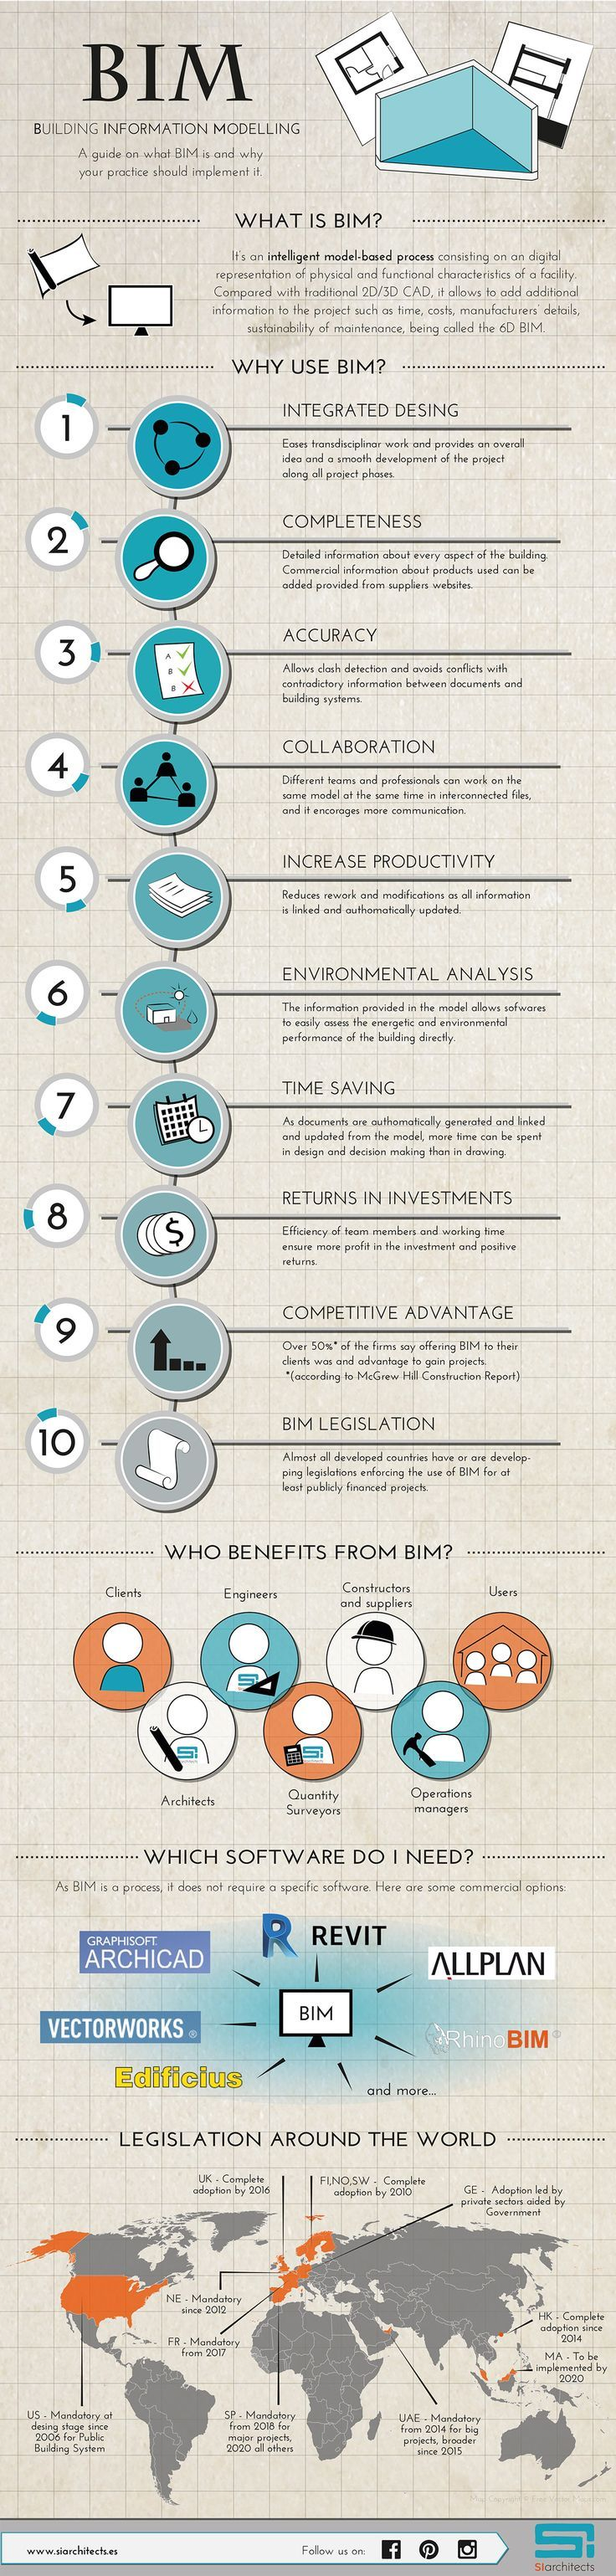 Infographic about BIM:Building Information System